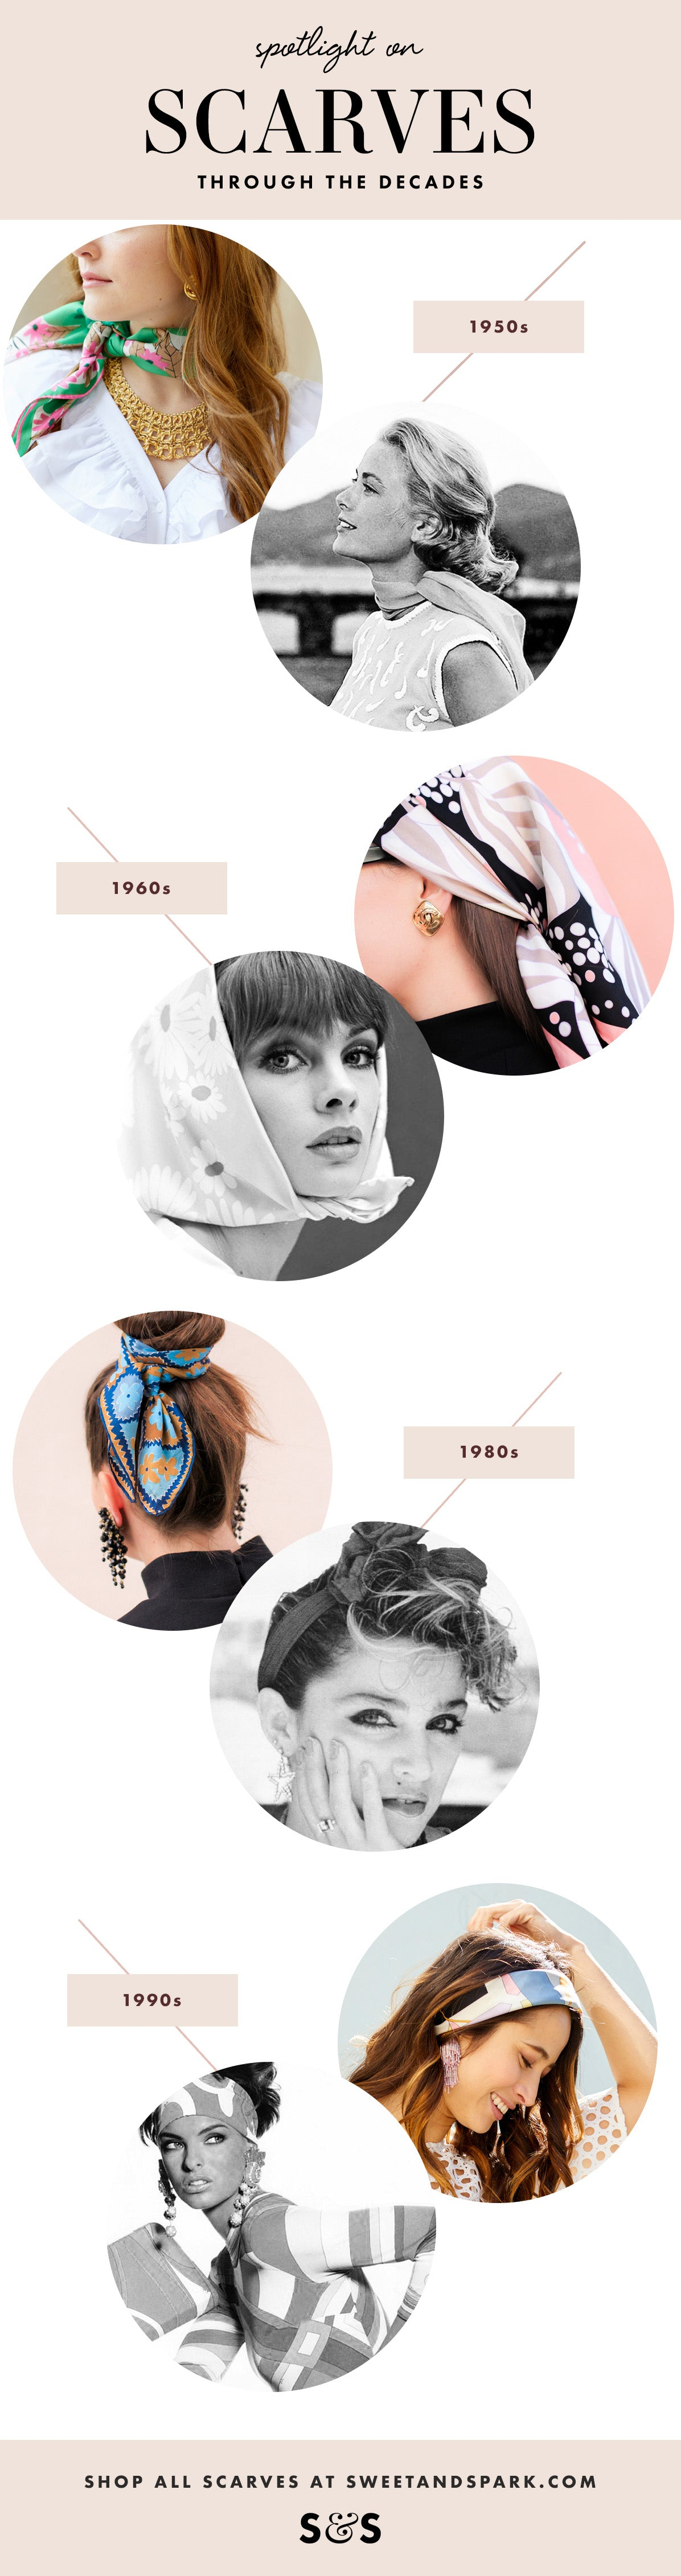 Vintage Scarf Inspiration Over the Decades